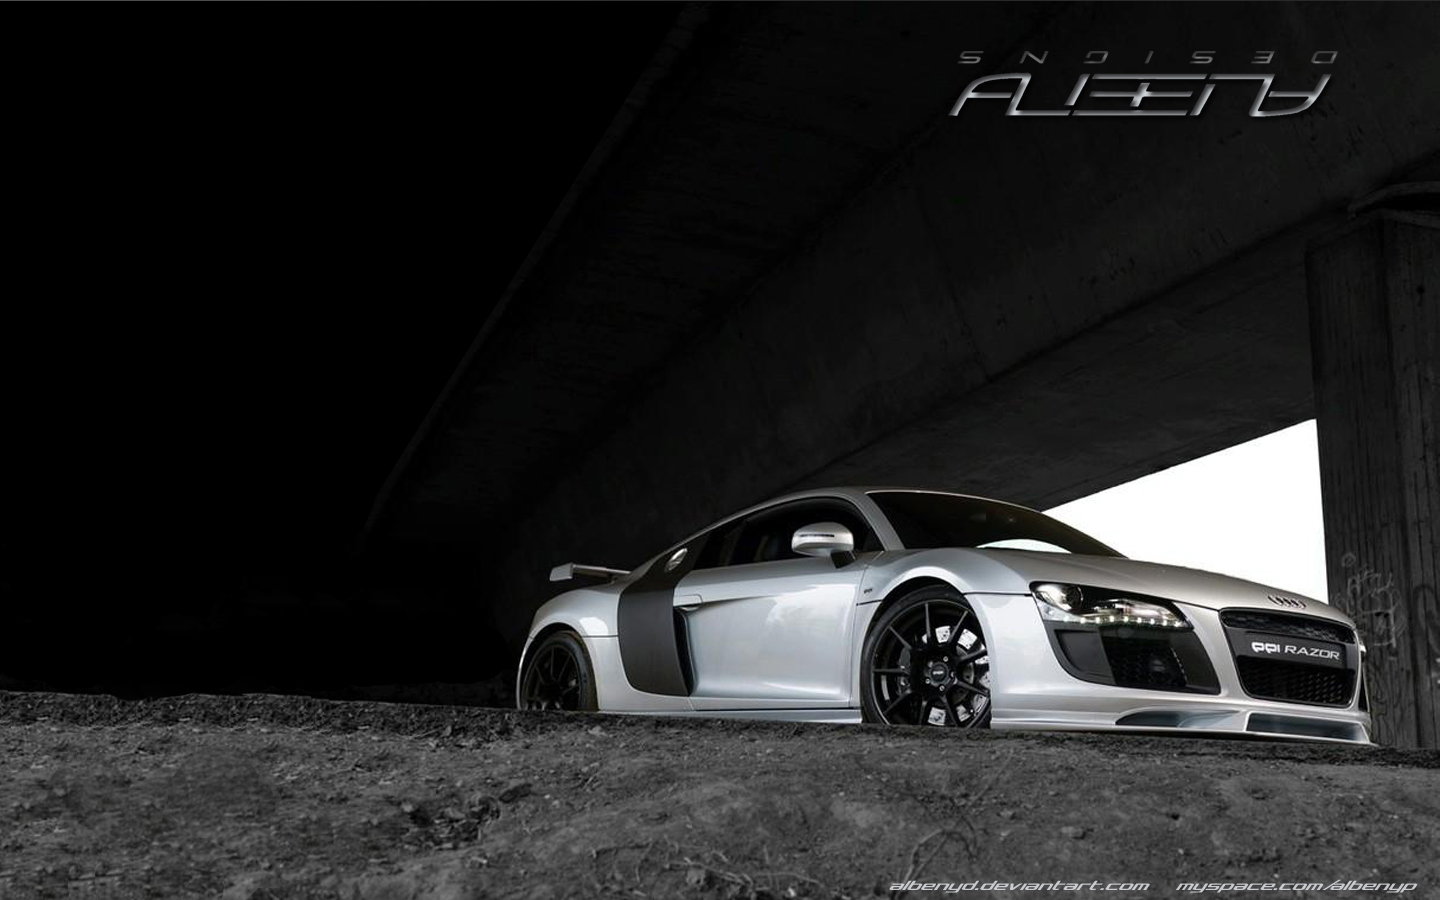 Free download wallpapper hd audi wallpaper sports cars - Sports car pictures download ...